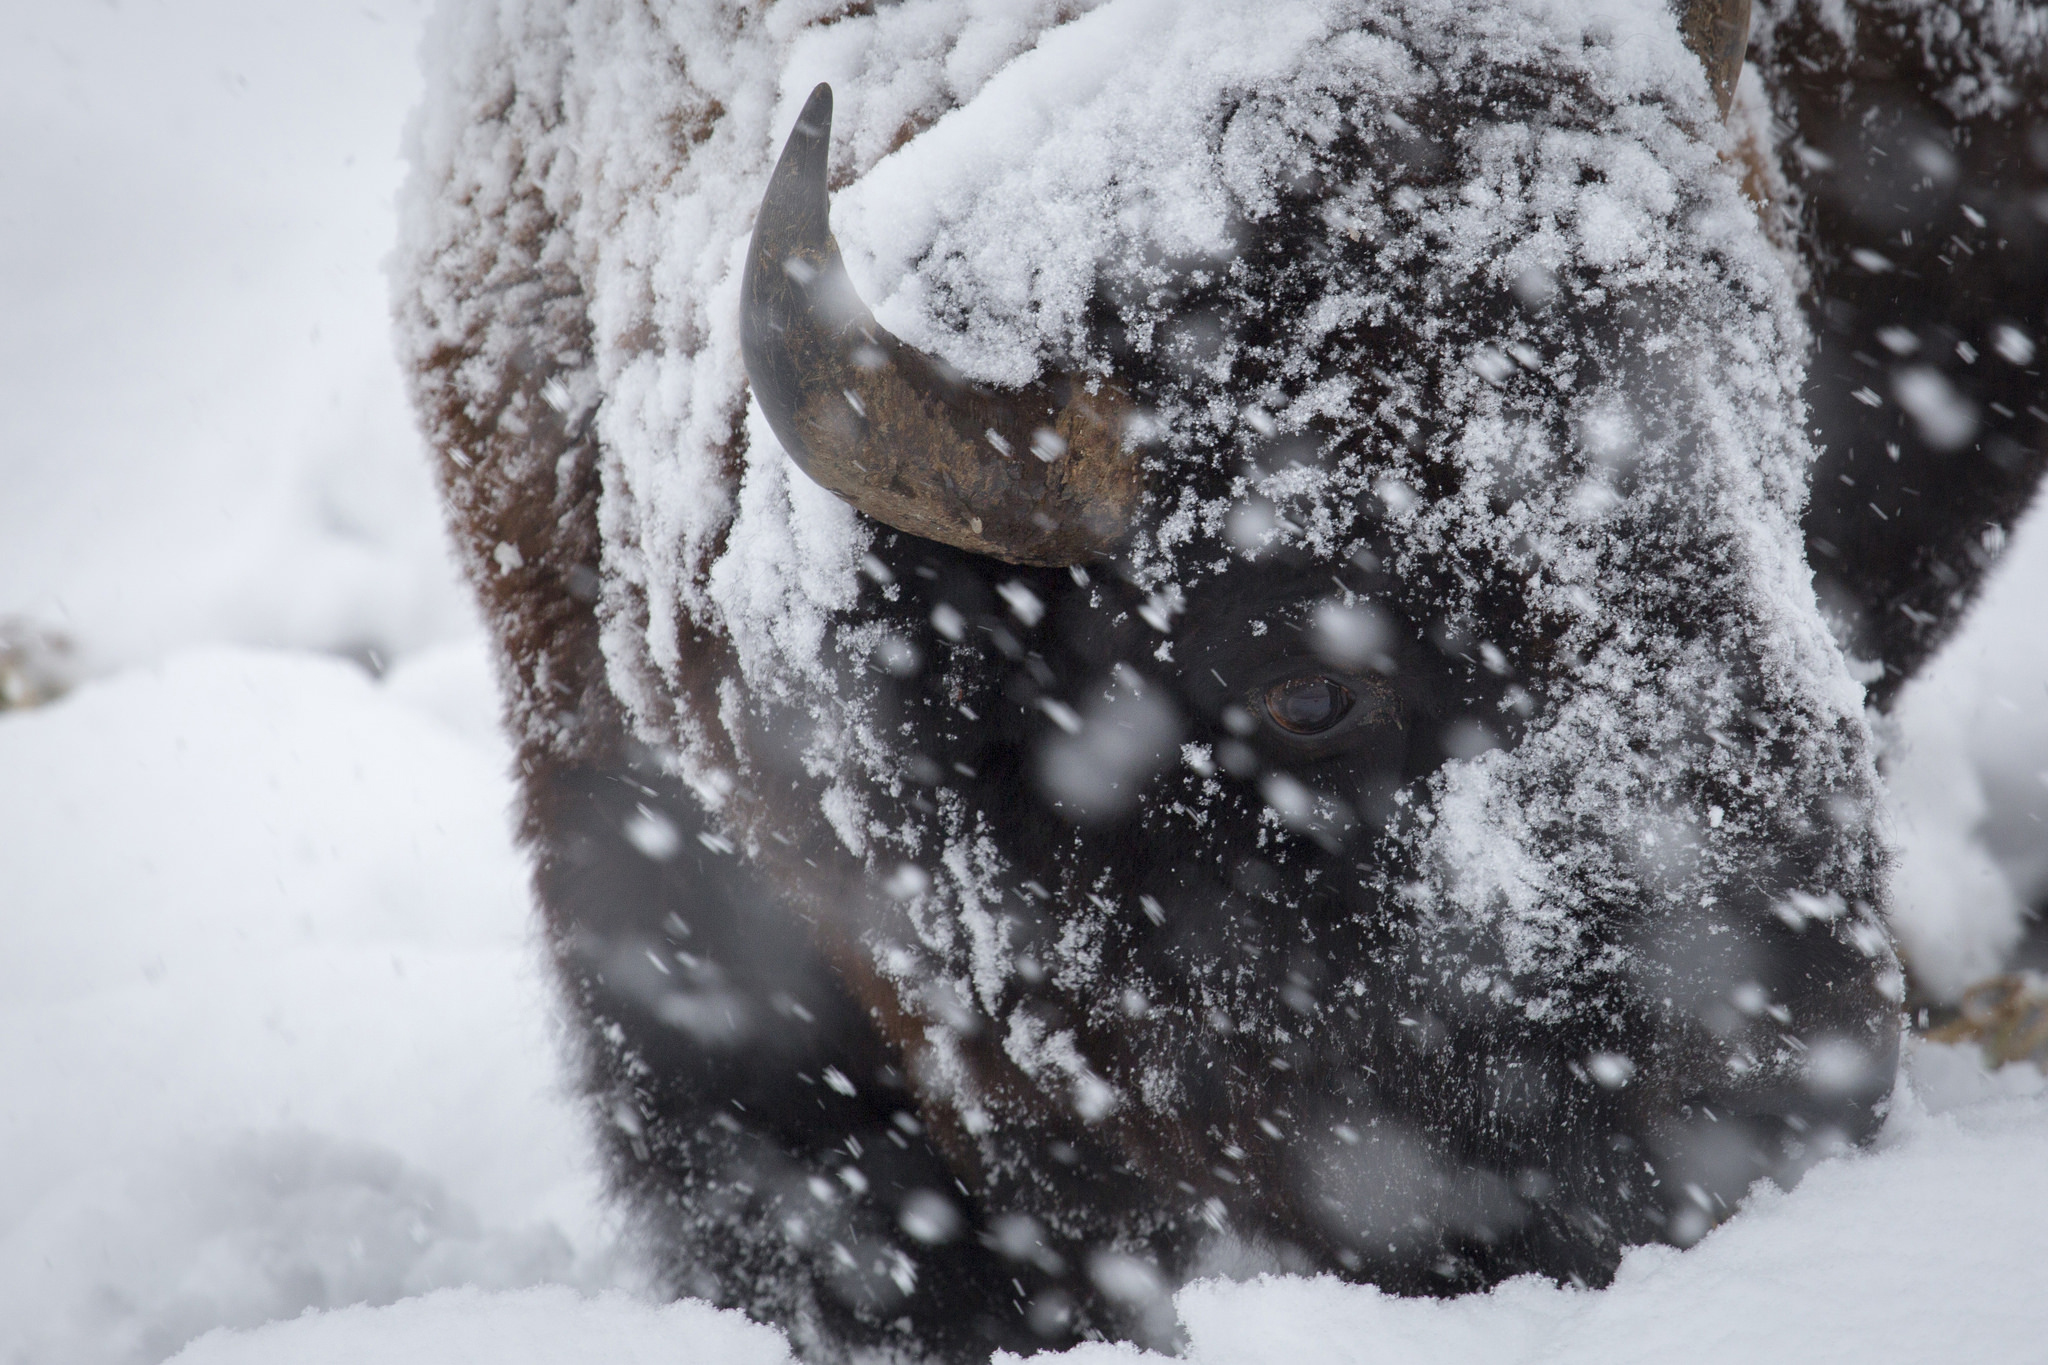 Photo: Bison, Tellowstone, Snow (Flickr/NPS)